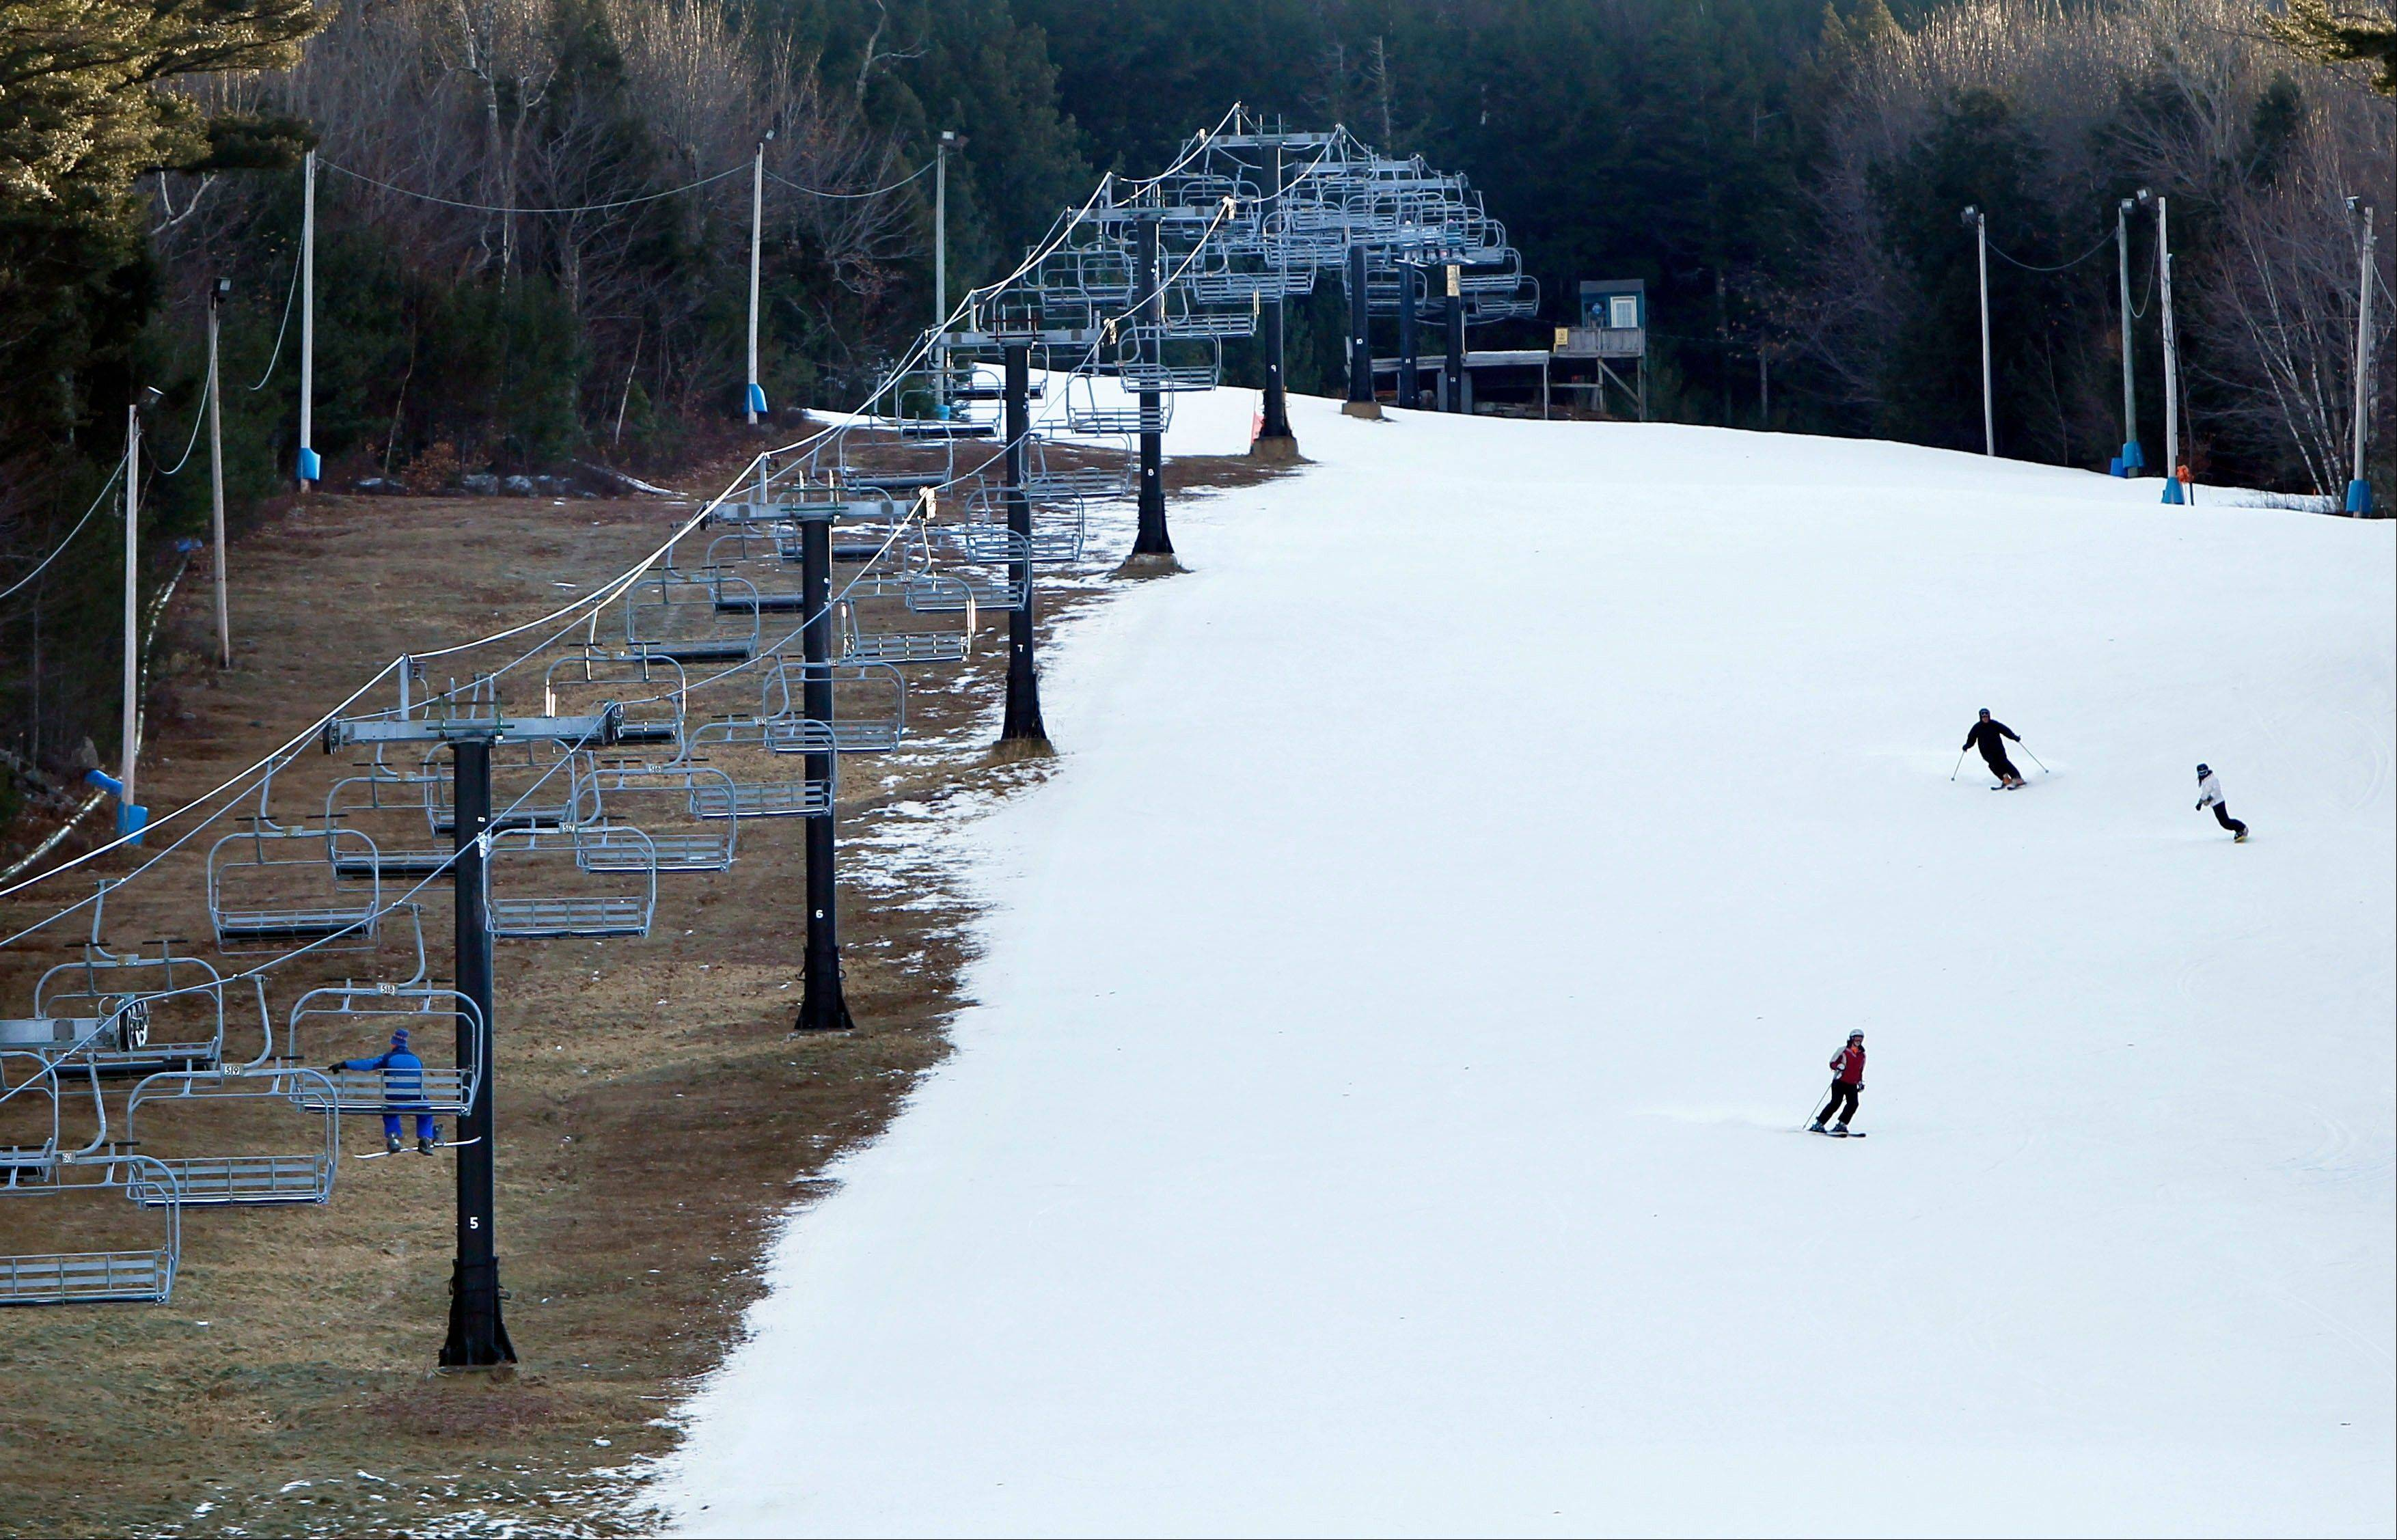 Man-made snow coats a ski run next to barren ground under a chairlift at Shawnee Peak ski area in Bridgton, Maine. Scientists point to both scant recent snowfall in parts of the country and this month's whopper of a Northeast blizzard as potential global warming signs. It may seem like a contradiction, but the explanation lies in atmospheric physics.